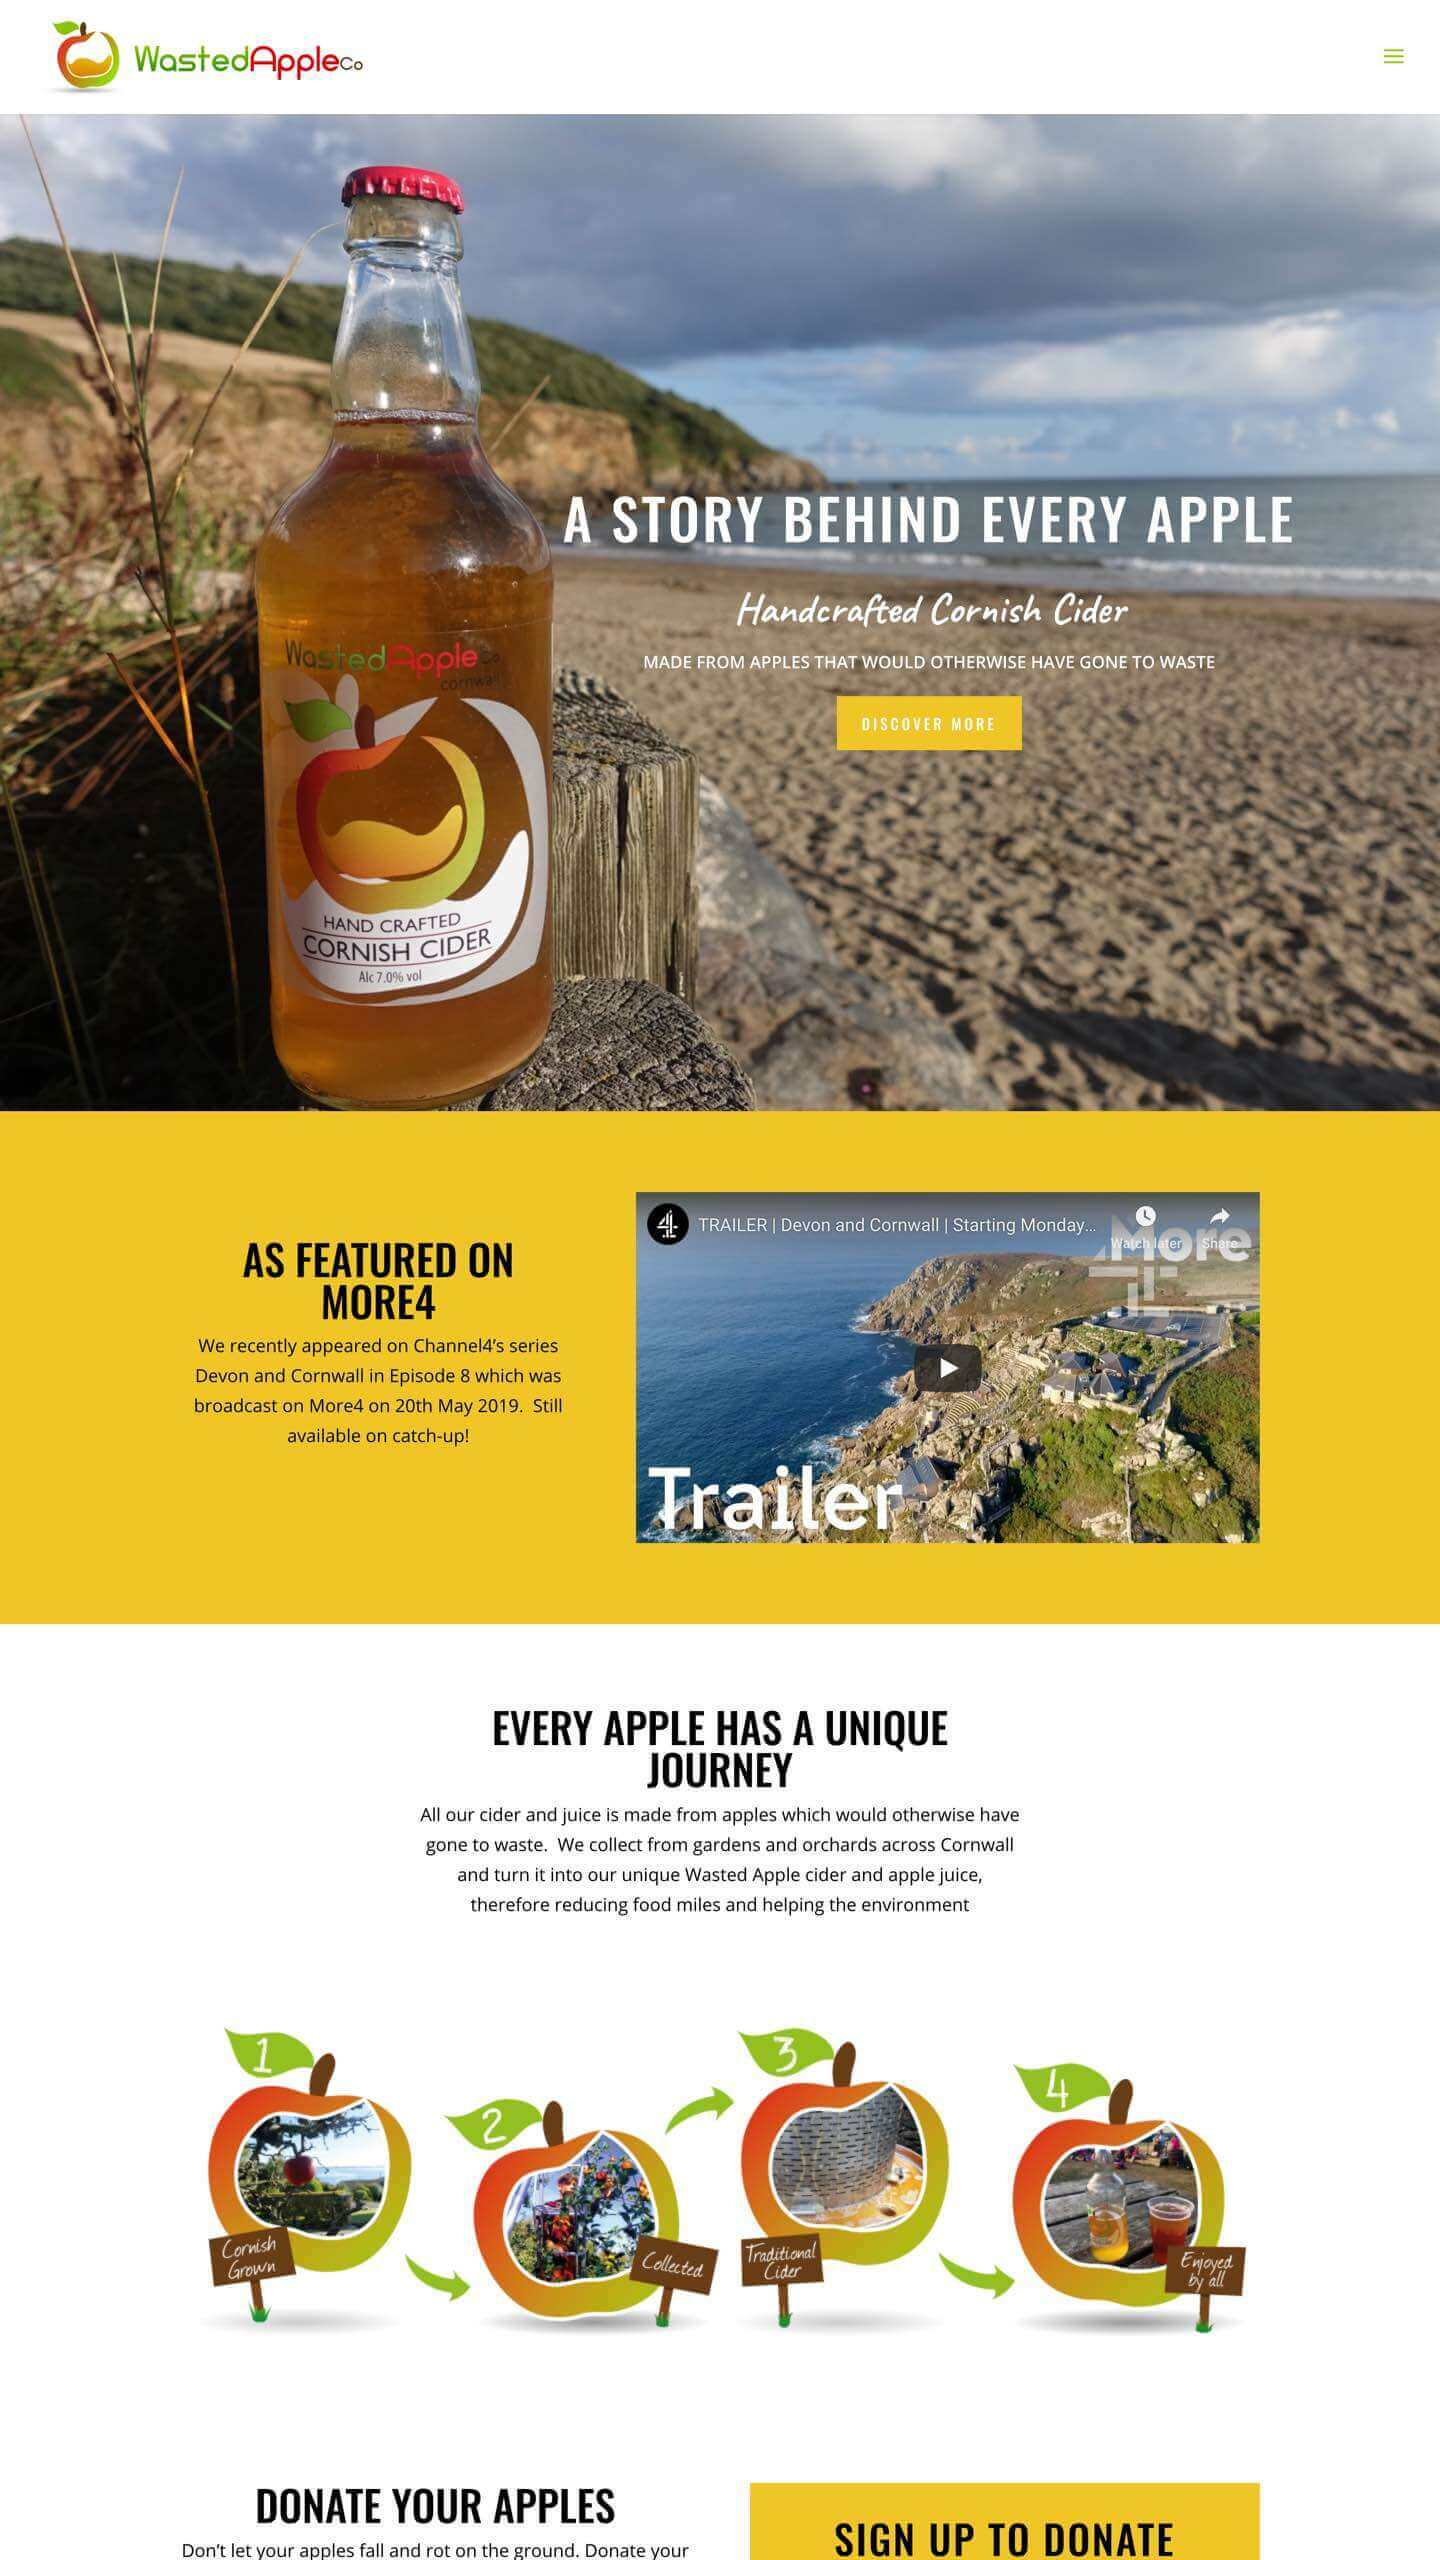 We help wasted apples design, manage and grow there business online